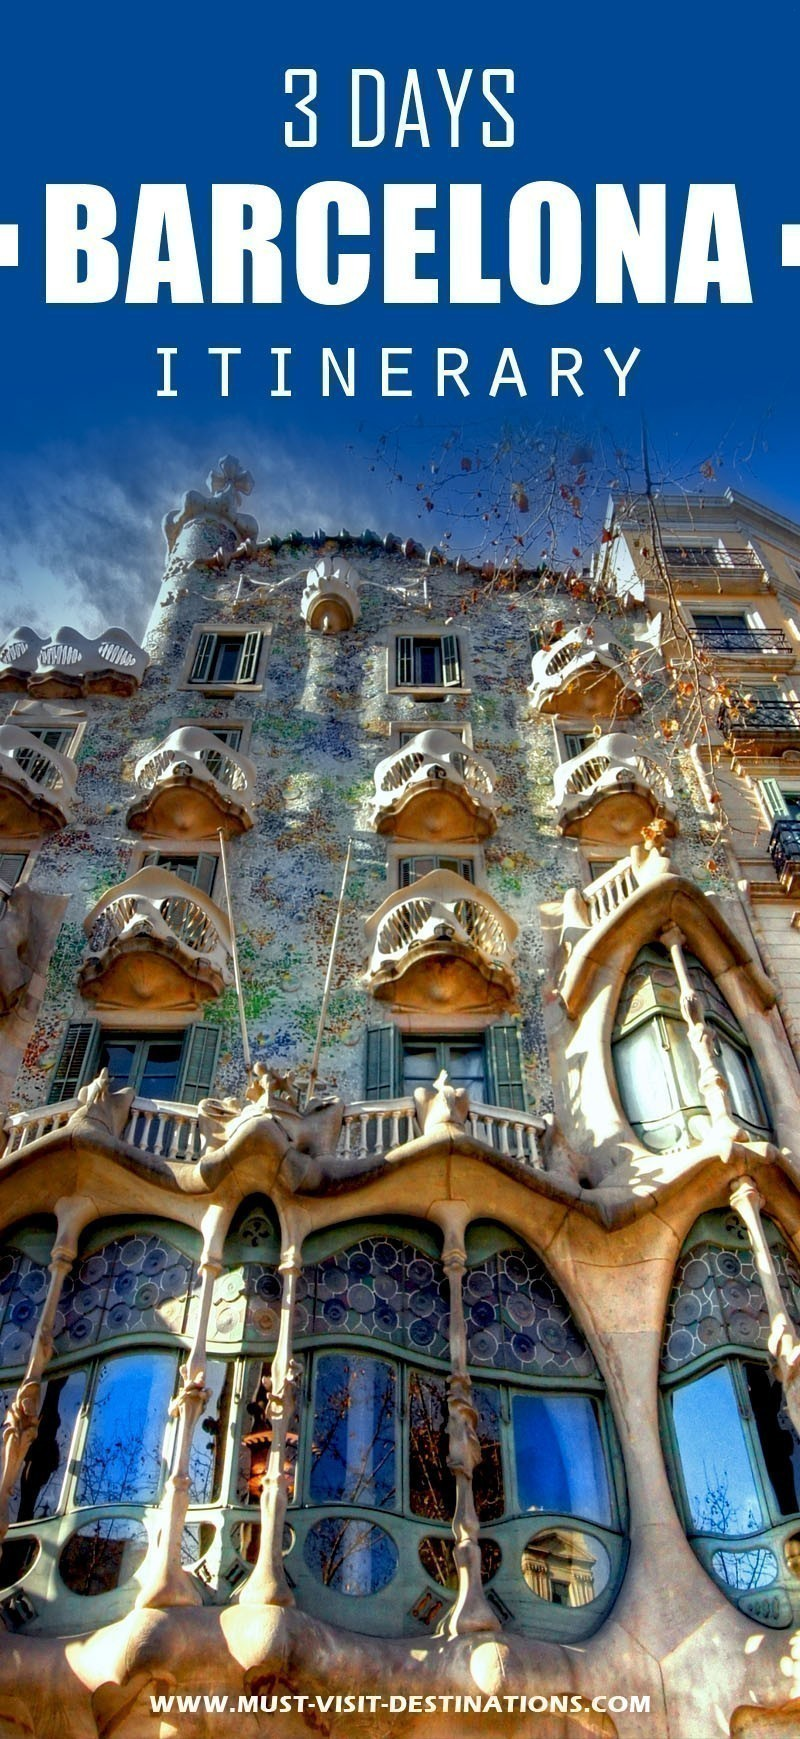 Only 3 days in Barcelona ? No problem! Check out this itinerary! #must-visit #barcelona #destination